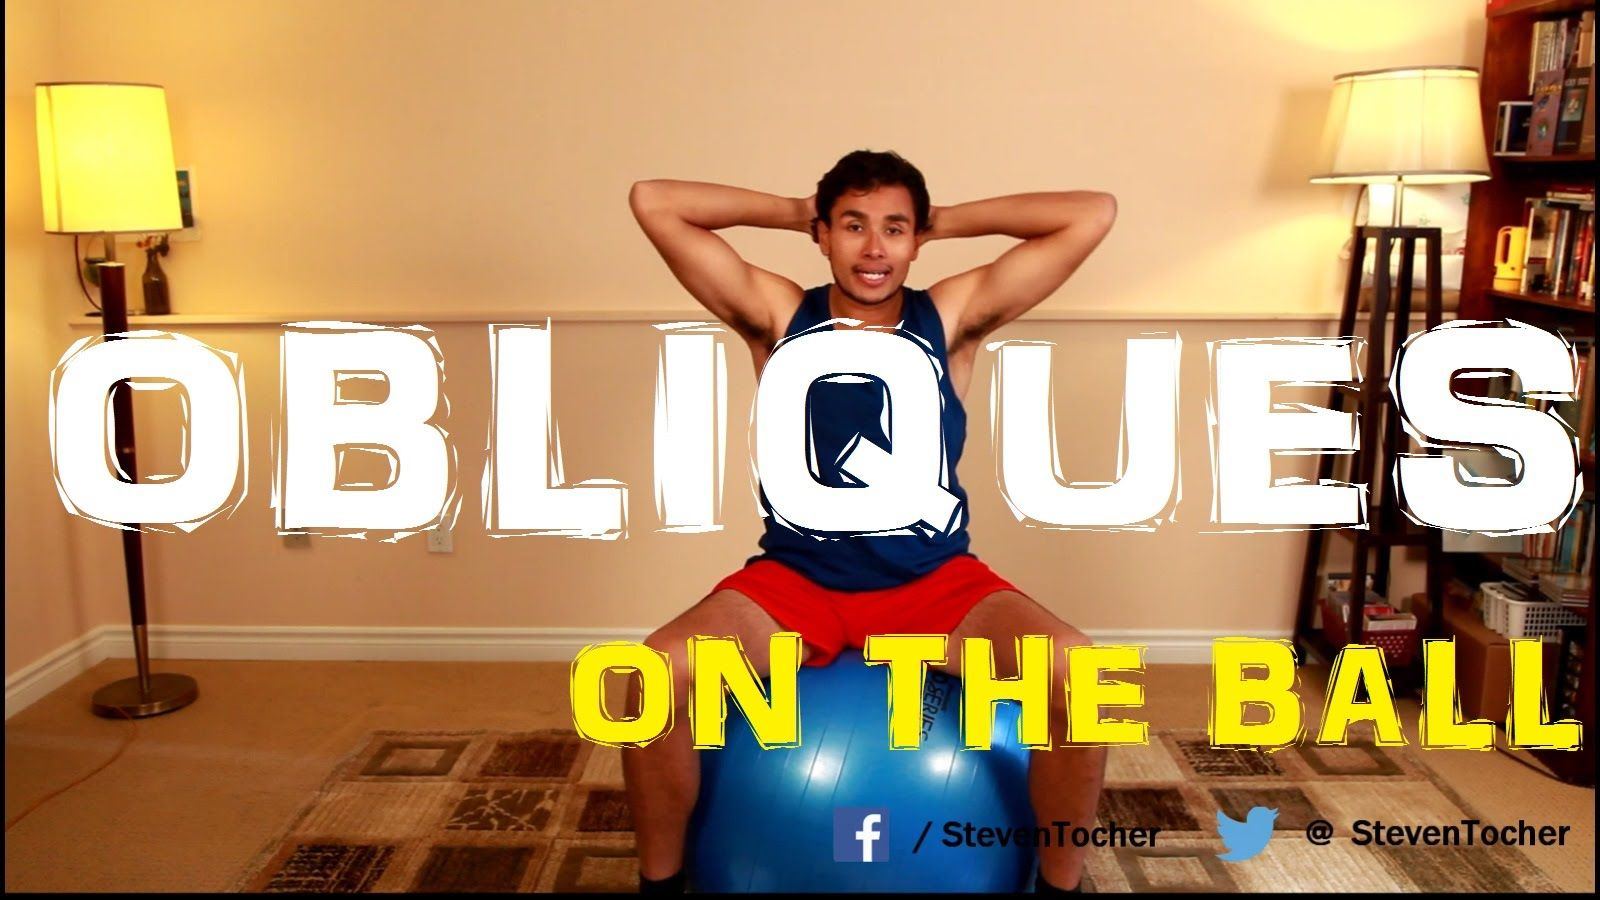 Oblique Exercises on the Ball (Year 2 Episode 14)